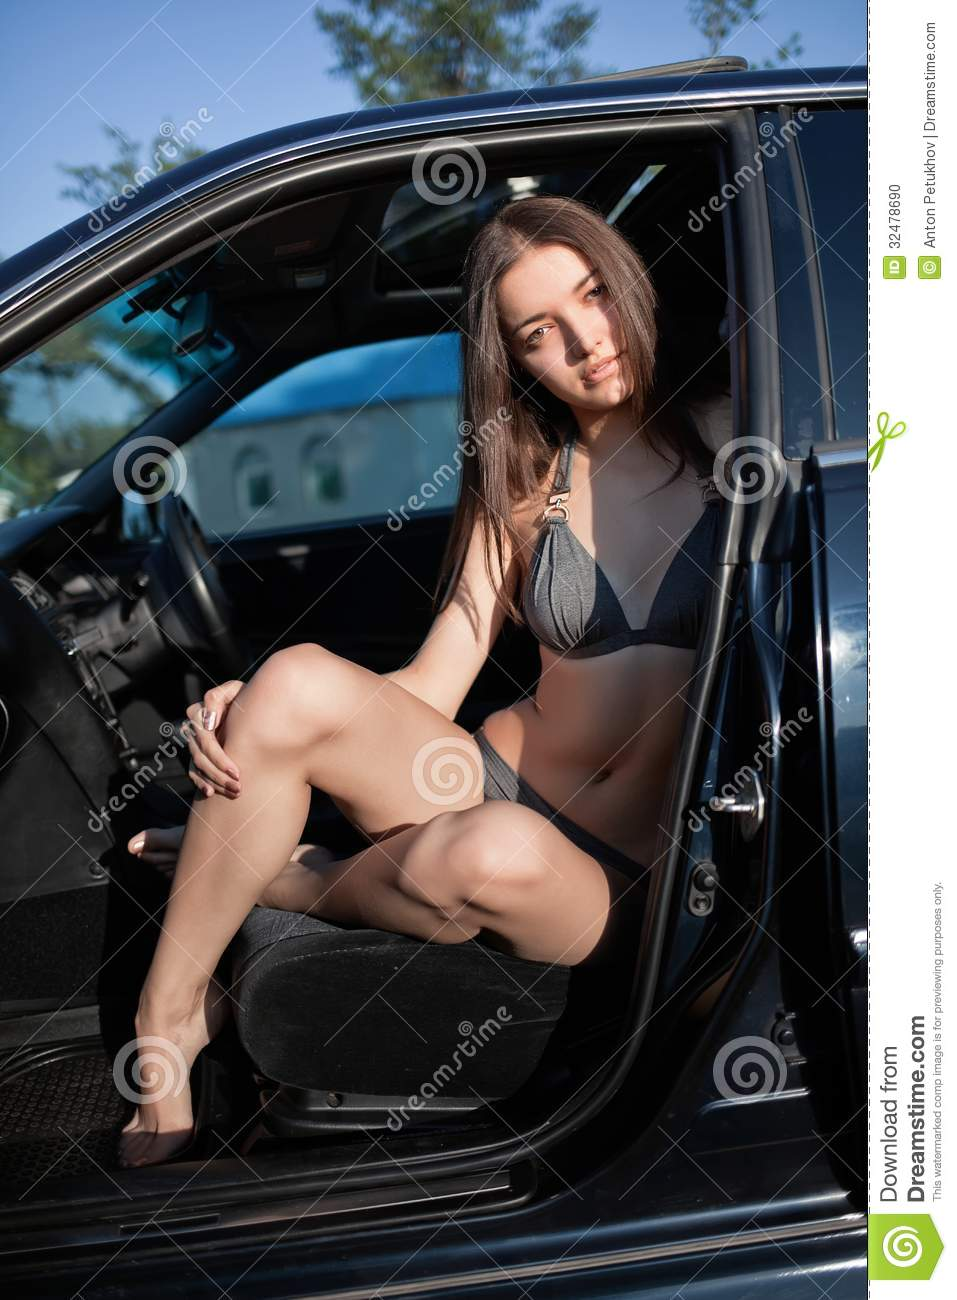 Woman In Swim Suit In Car Stock Photo Image Of Caucasian